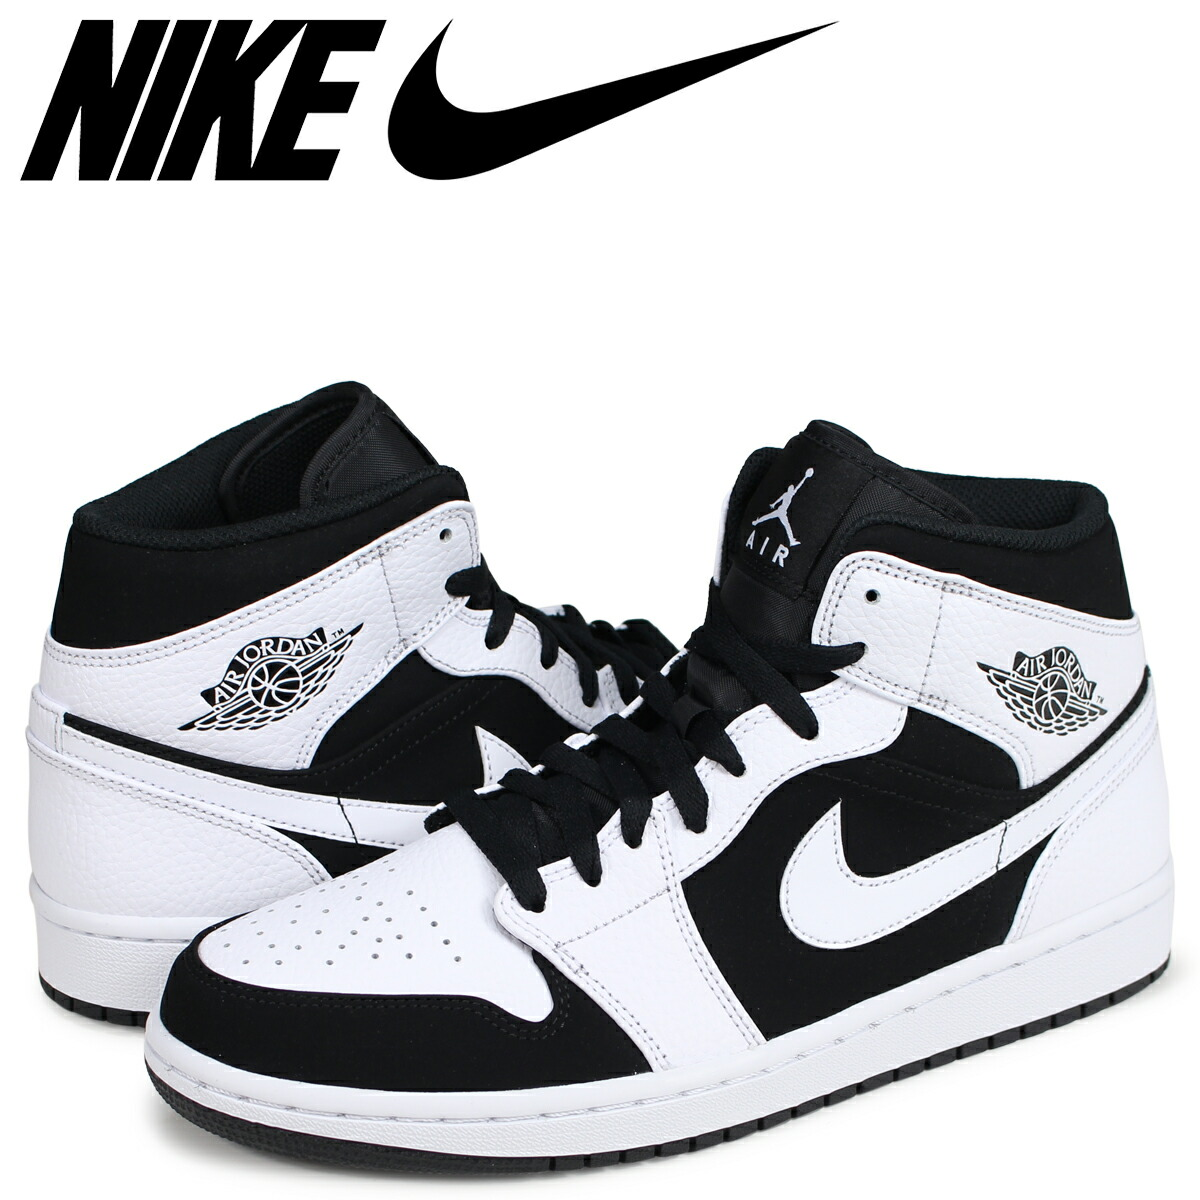 cb151dbcb700 SneaK Online Shop  Nike NIKE Air Jordan 1 sneakers men AIR JORDAN 1 ...